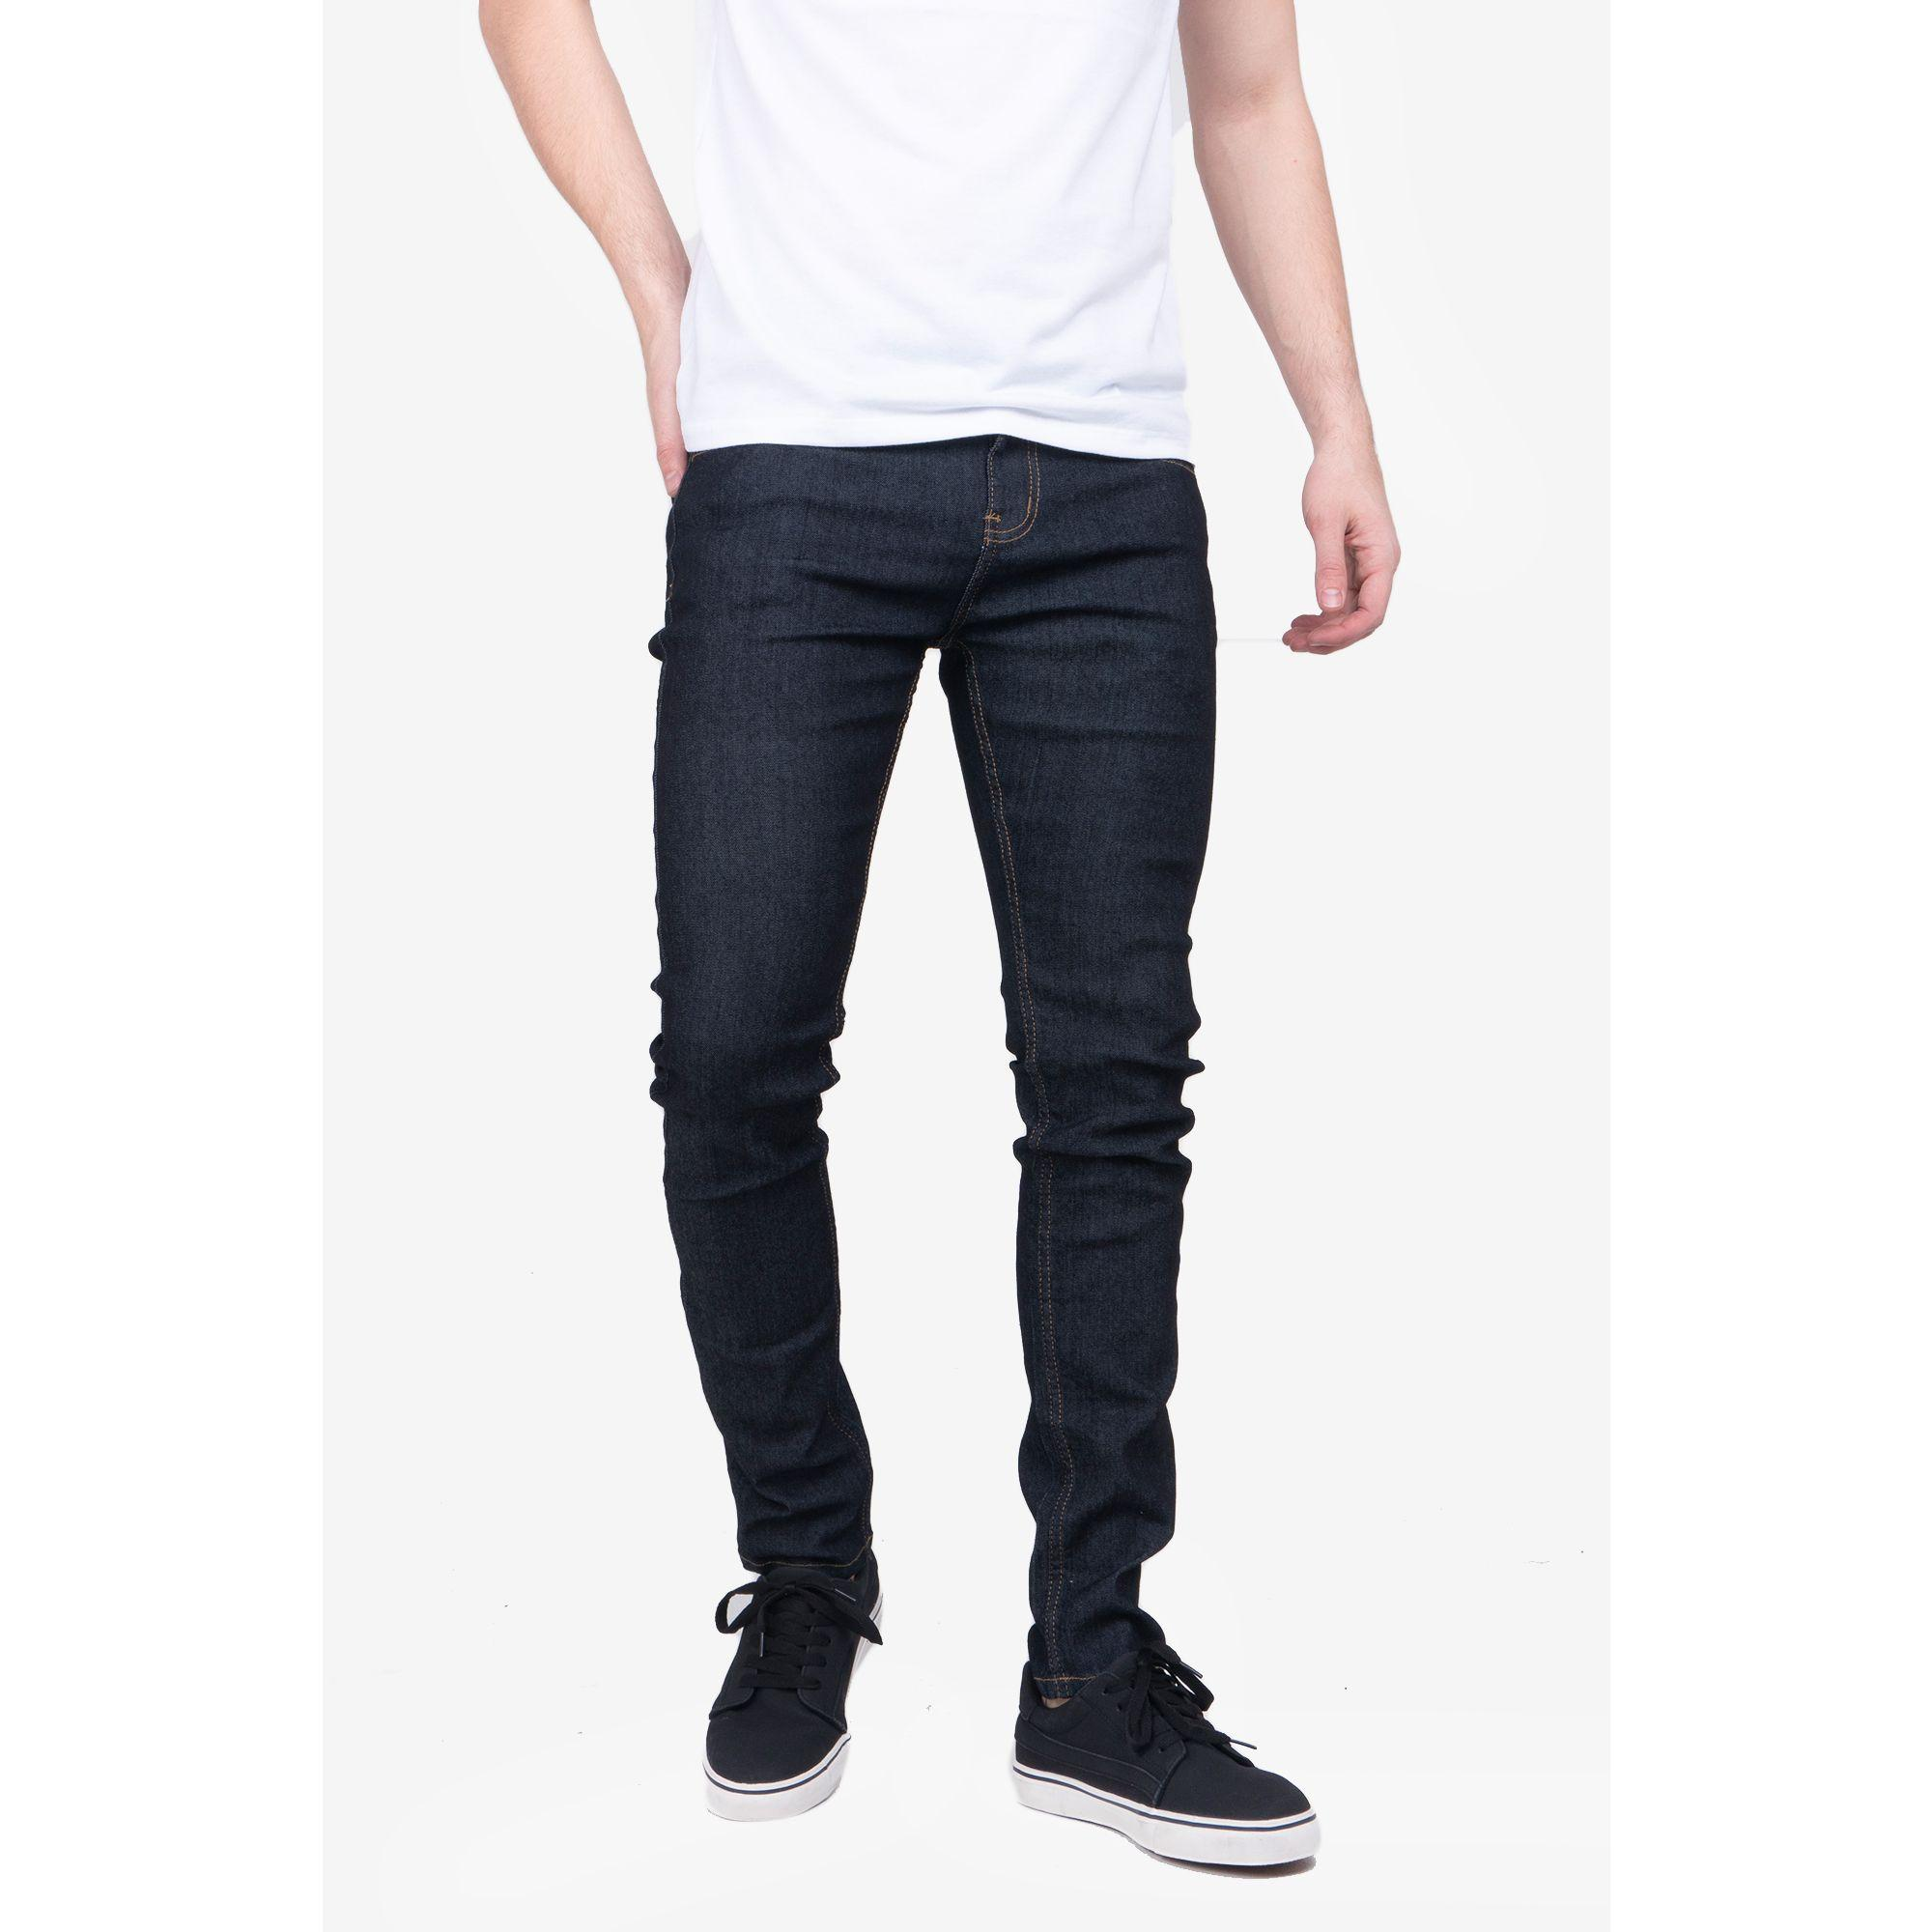 bc00251d4055 Penshoppe Skinny Jeans (Blue): Buy sell online Jeans with cheap ...